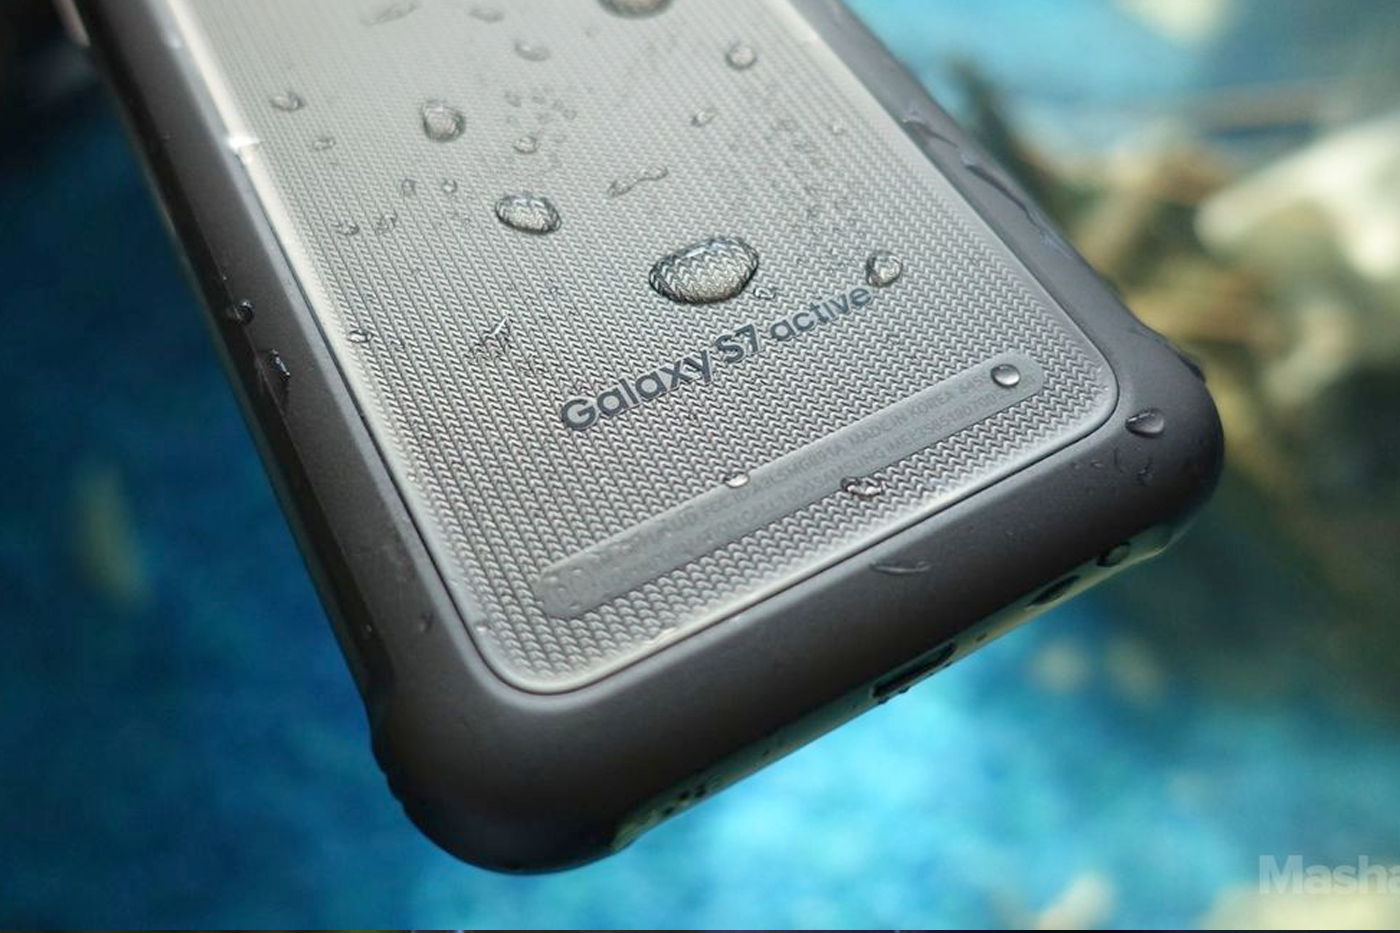 Samsung Galxy S7 Active waterproof